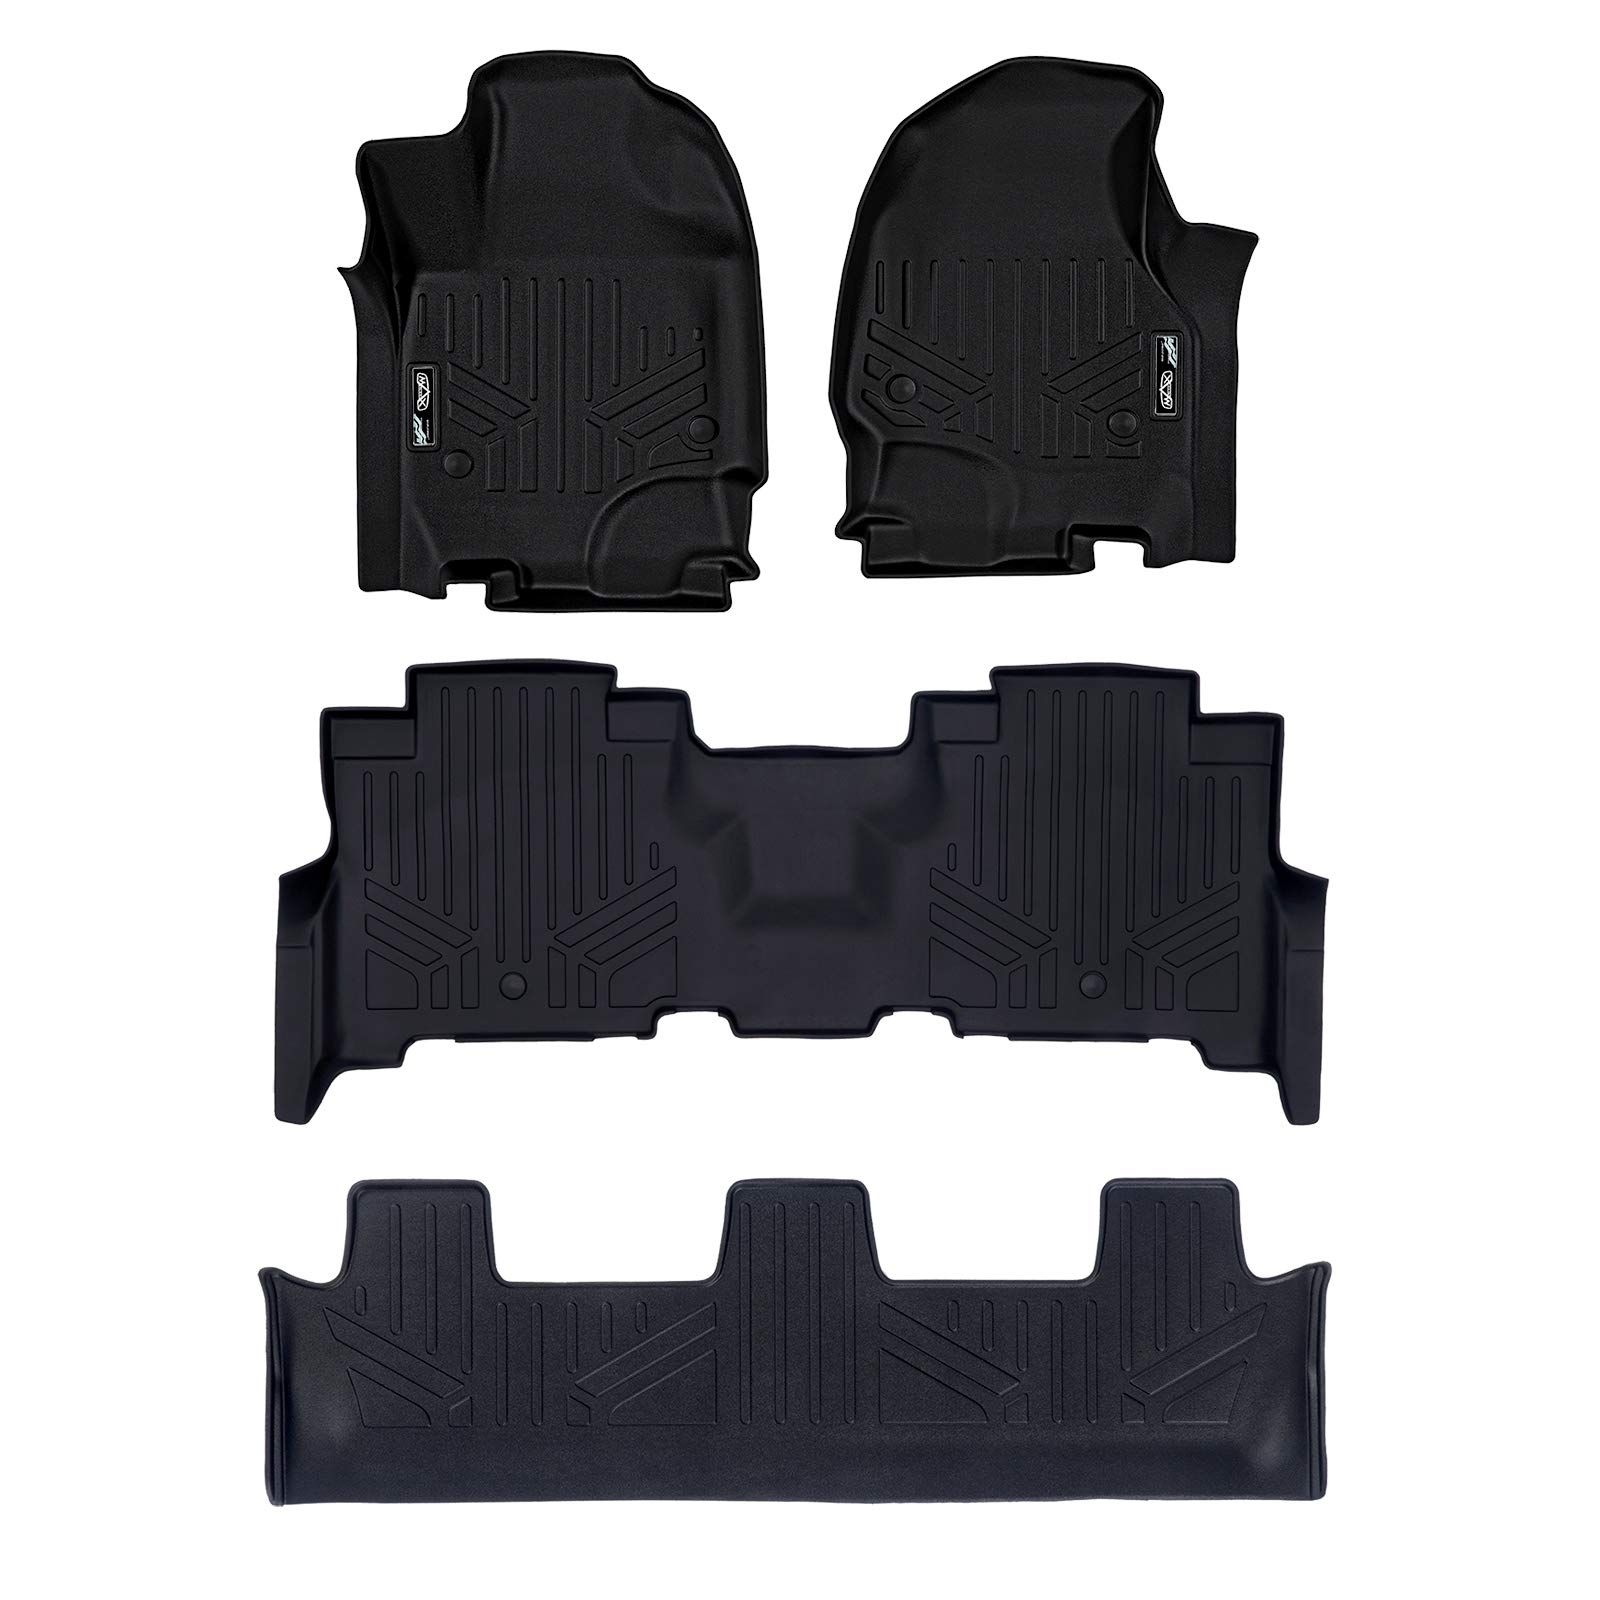 Smartliner Floor Mats 3 Row Liner Set Black For 2018 2019 Ford Expedition Expedition Max With 2nd Row Bench Seat Ford Expedition 2019 Ford Ford